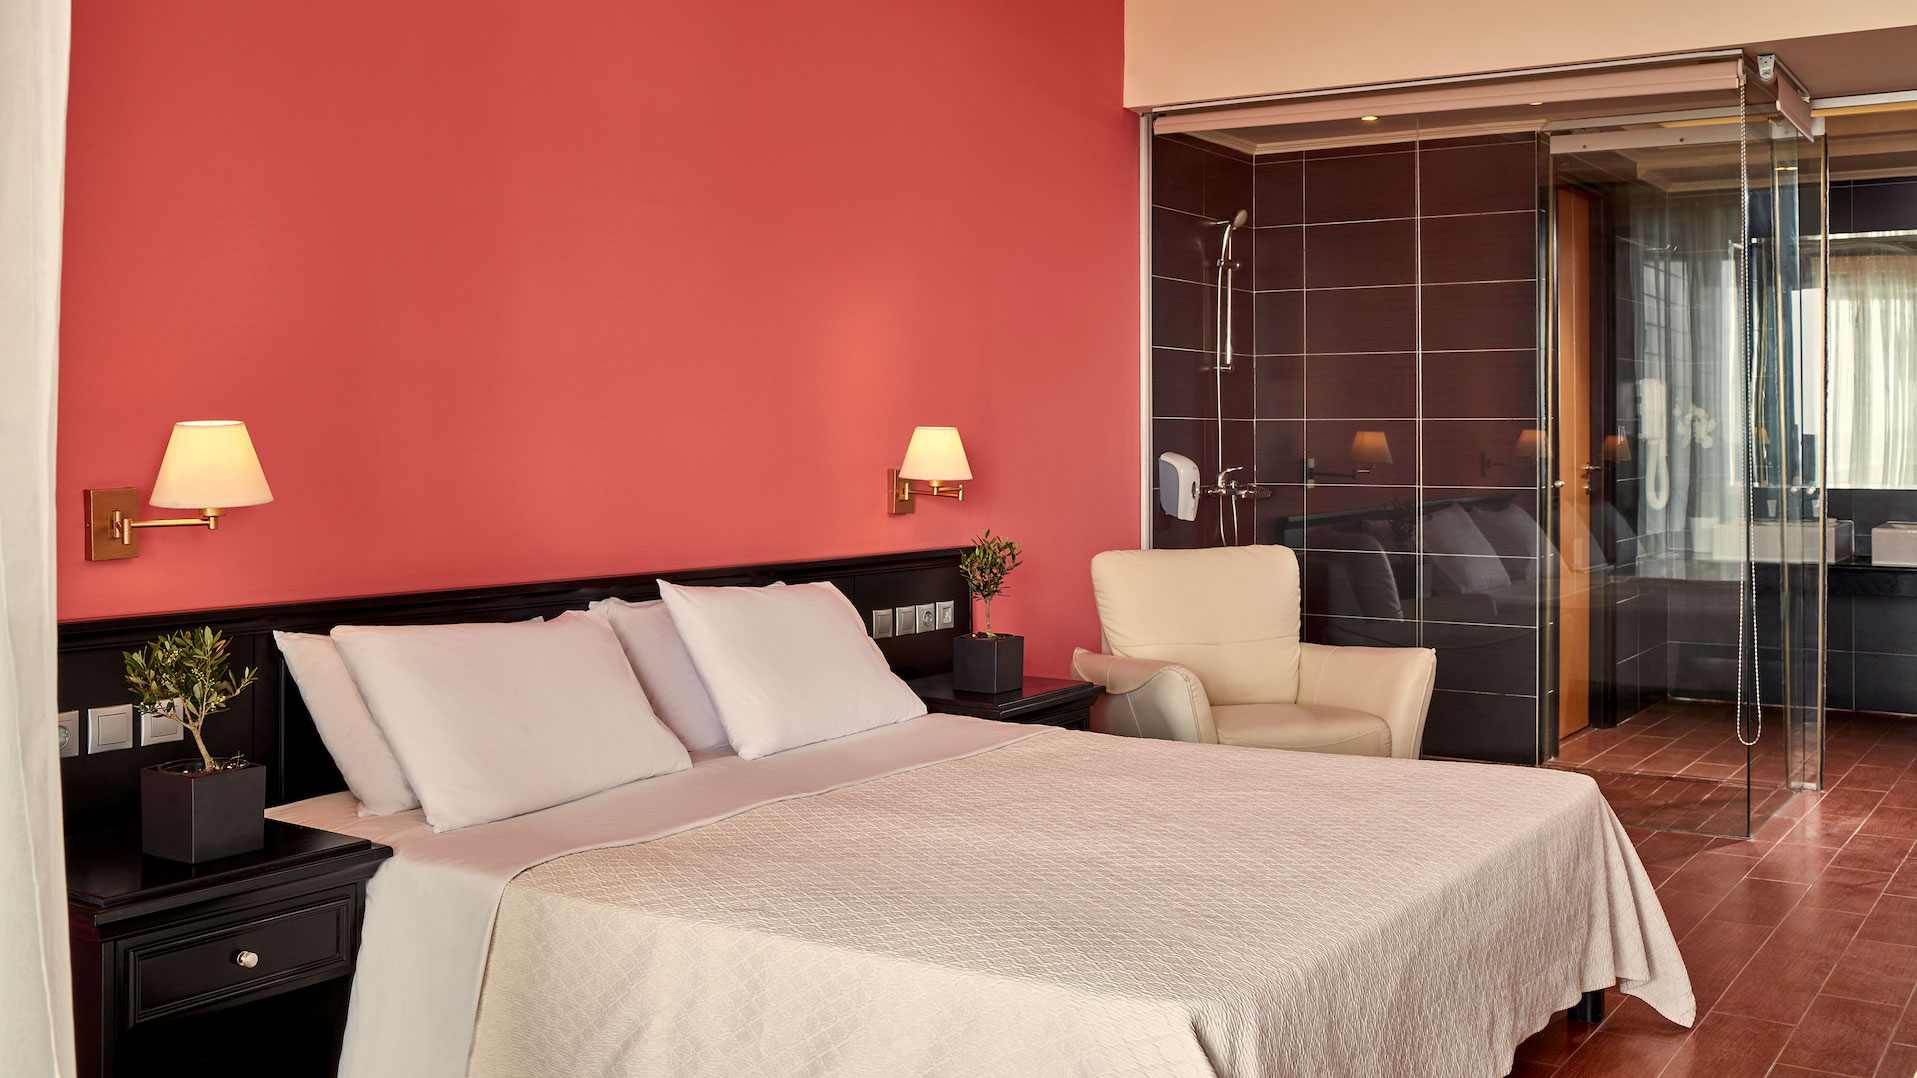 Pylaia Boutique Hotel Joins HotelBrain's Family